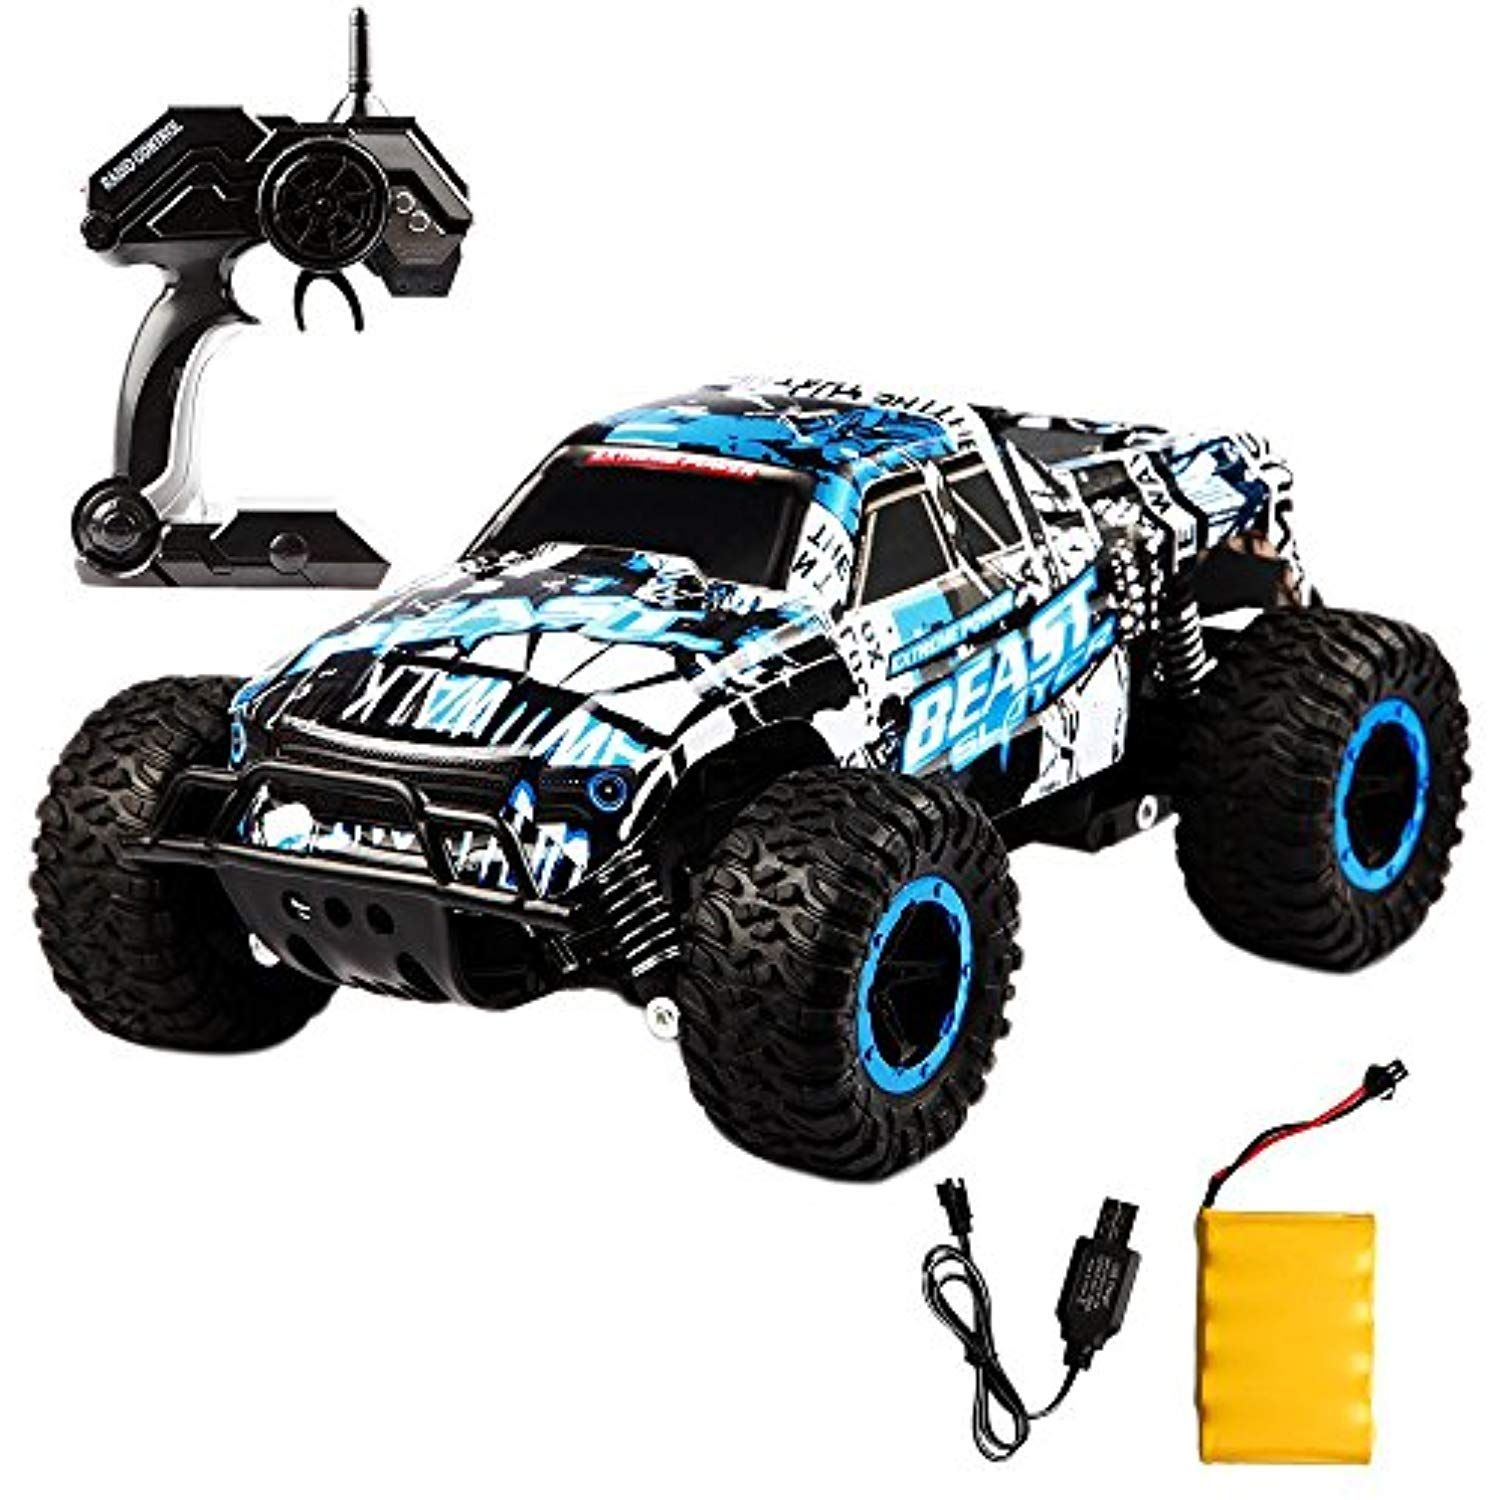 Rc Car Off Road Truck Electric High Speed Vehicle With 2 4ghz 4ch 1 16 Buggy Remote Control Race Monster Rechargeable Race Rock C Vehicles Trucks Rock Crawler